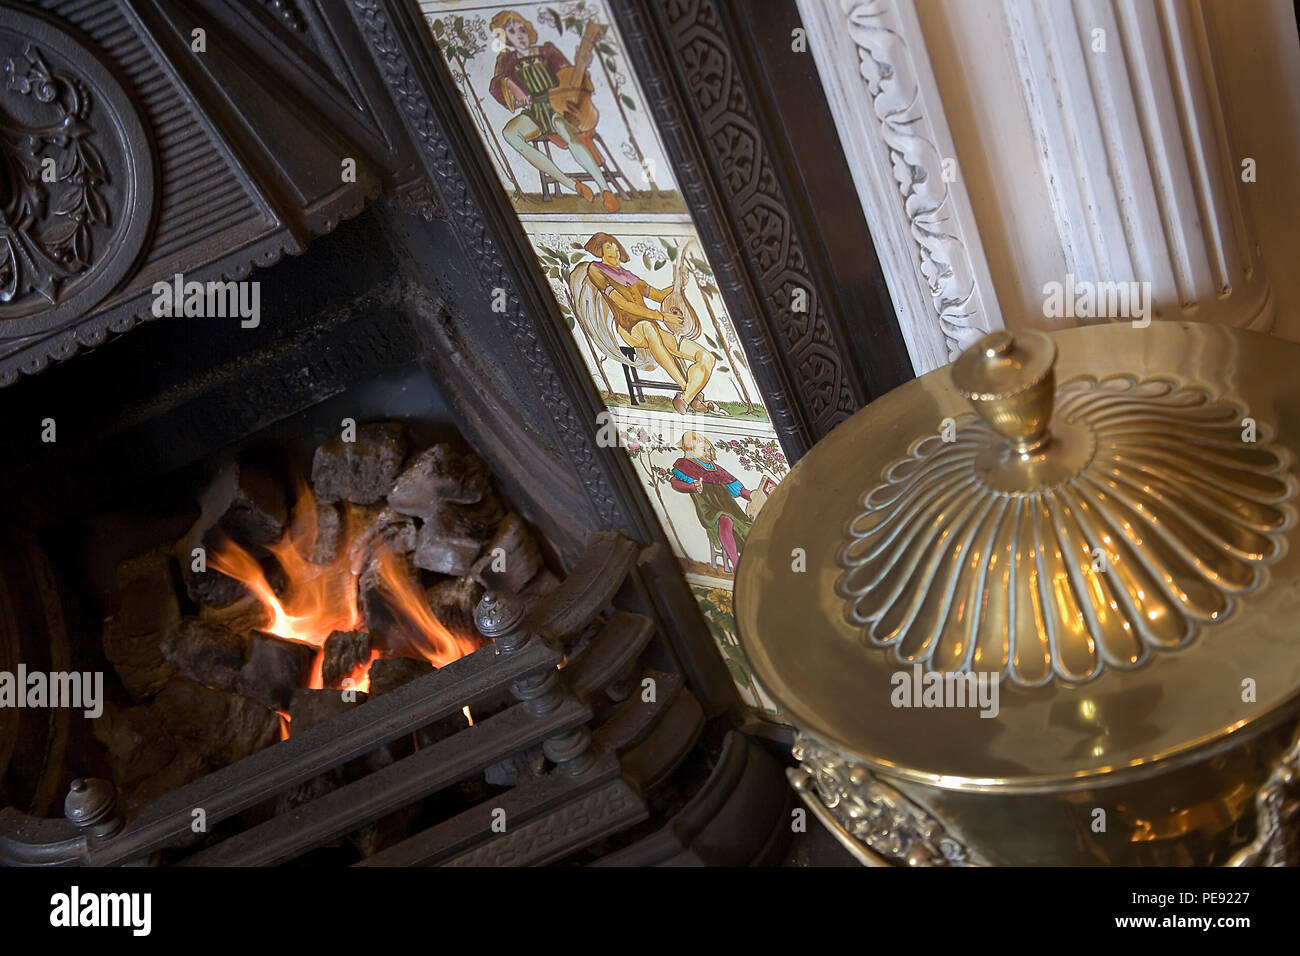 Victorian fireplace with decorative tiles and open fire - Stock Image